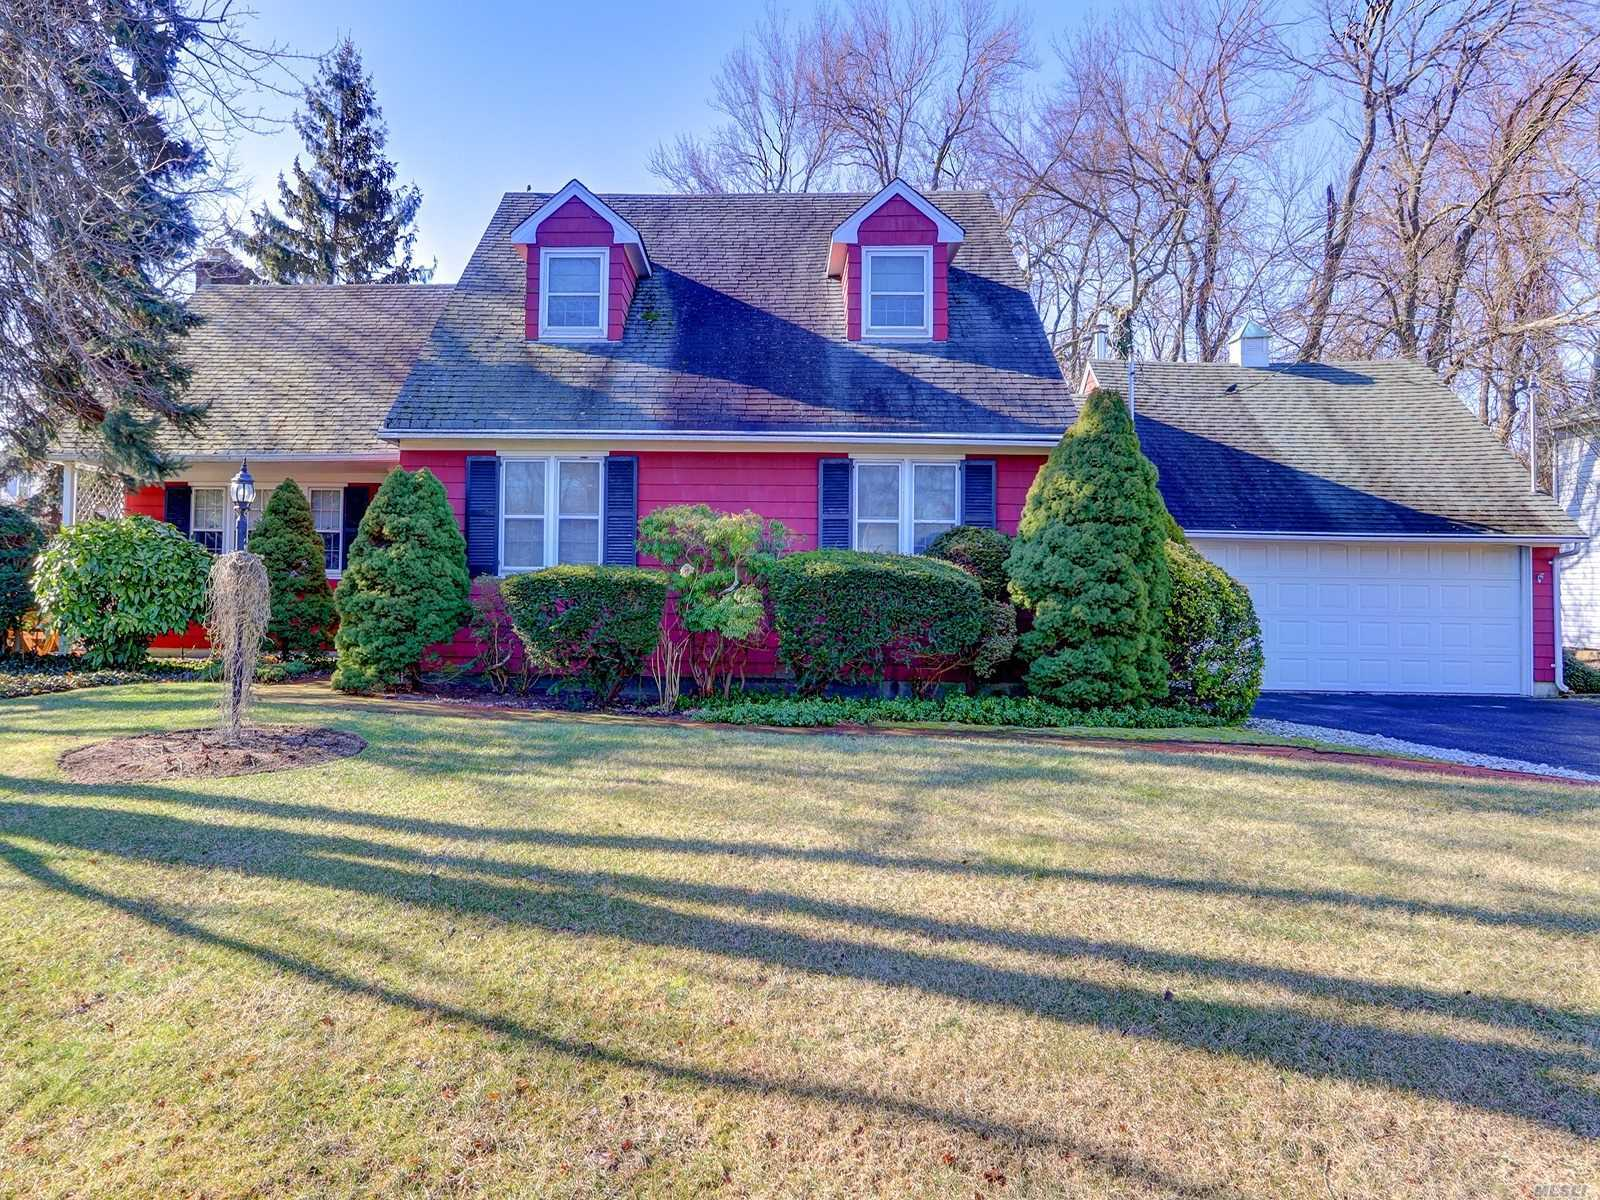 Come See This Expanded Cape Featuring 4 Large Bedrooms 2 Full Baths, Living Room W/Fireplace, Formal Dining Room, Eat In Kitchen, Oversized 2 Car Garage On Large Property.. Babylon Village Amenities - West Babylon Schools